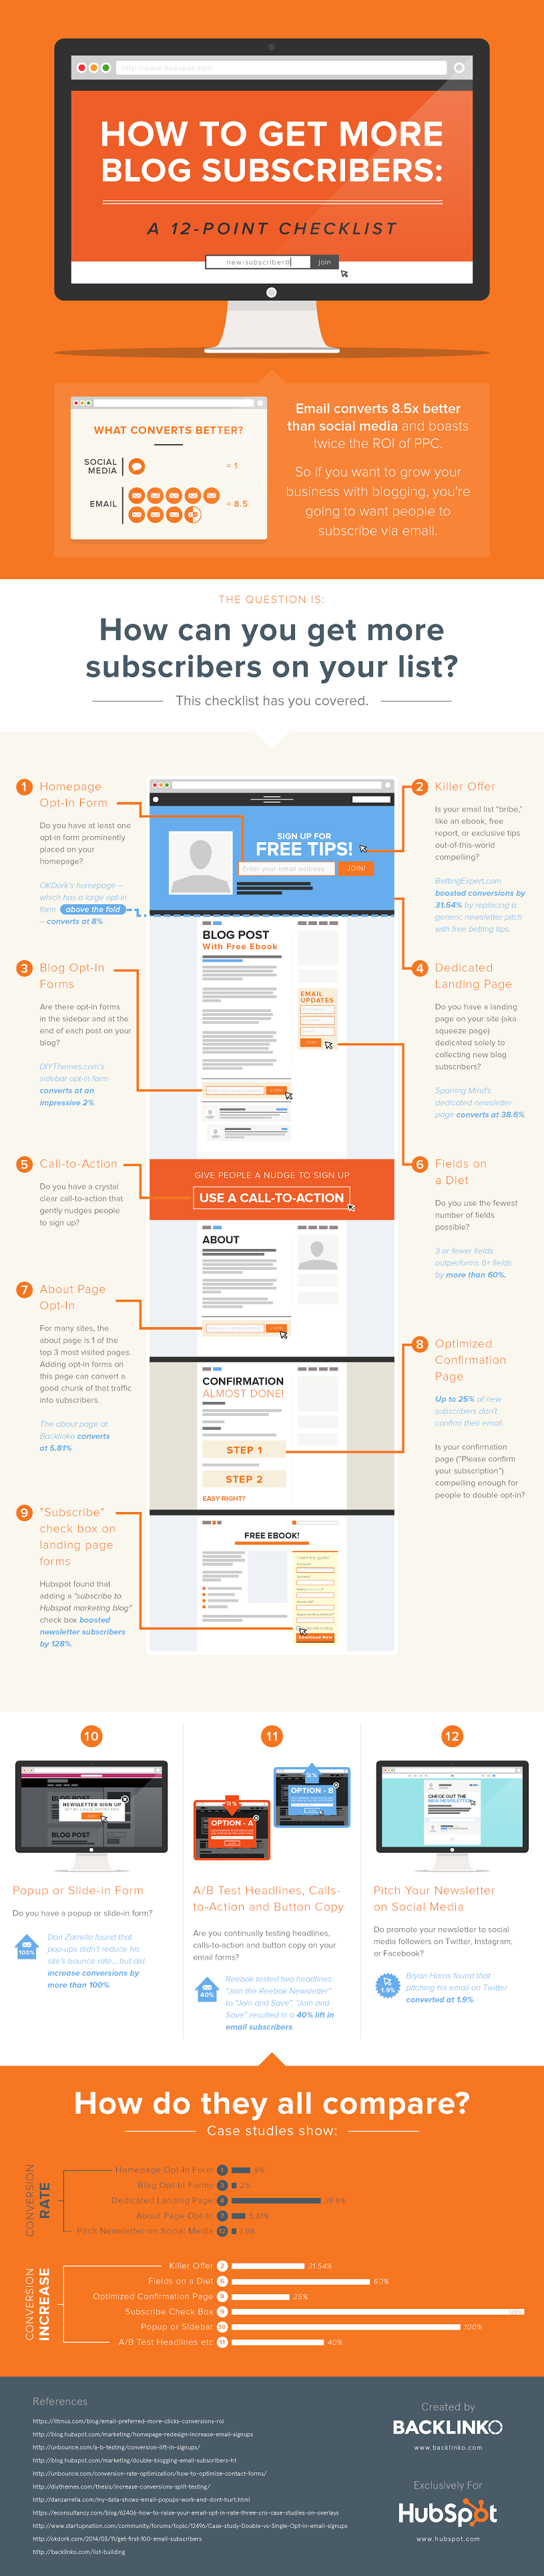 How To Get More Blog Subscribers - A 12 Point Checklist #infographic